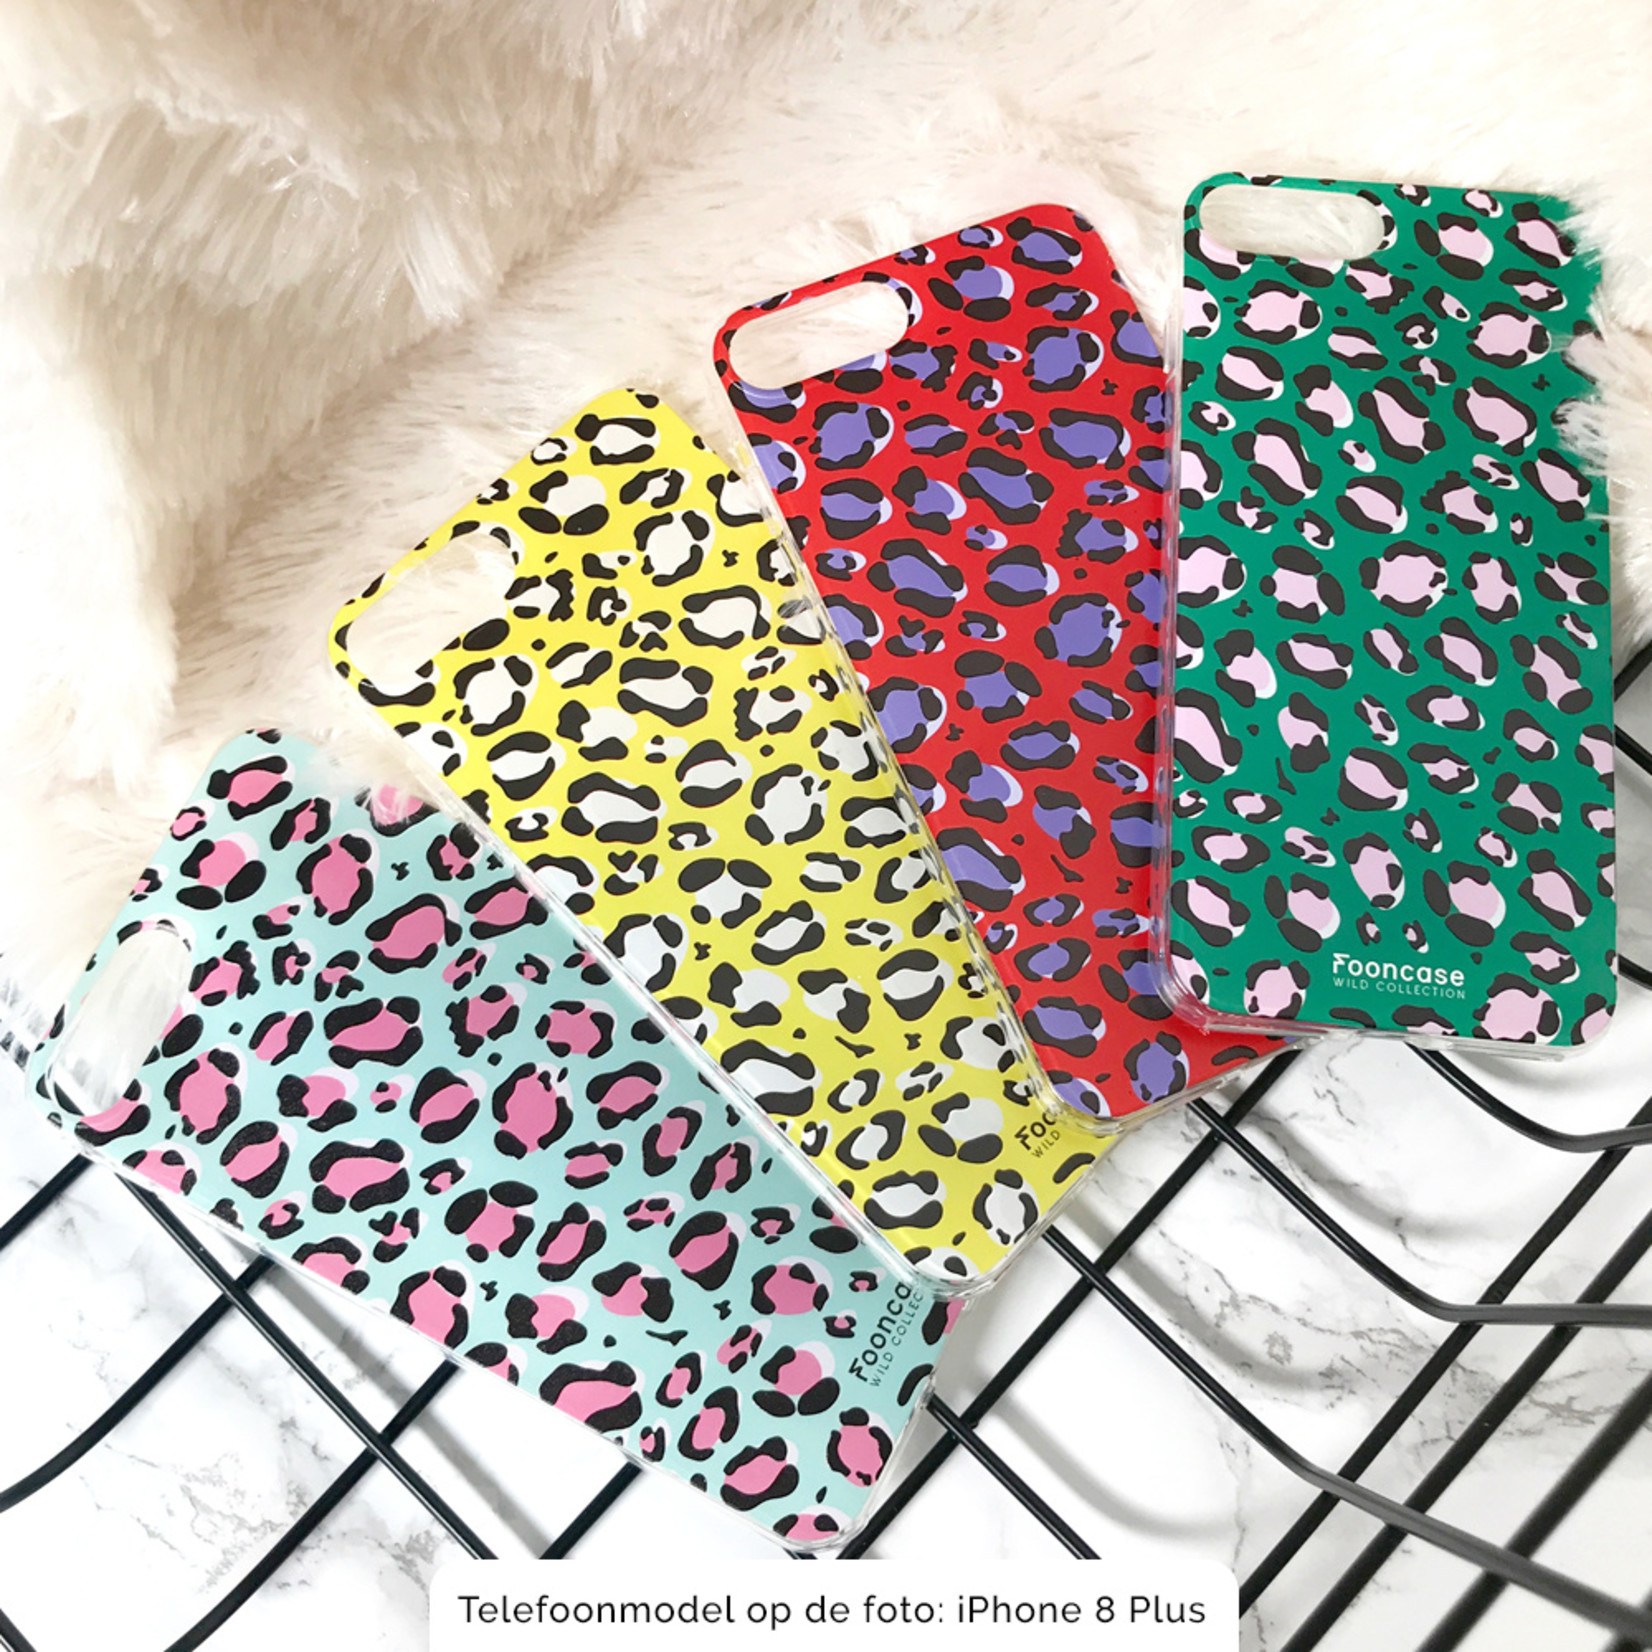 FOONCASE iPhone 6 Plus hoesje TPU Soft Case - Back Cover - WILD COLLECTION / Luipaard / Leopard print / Blauw